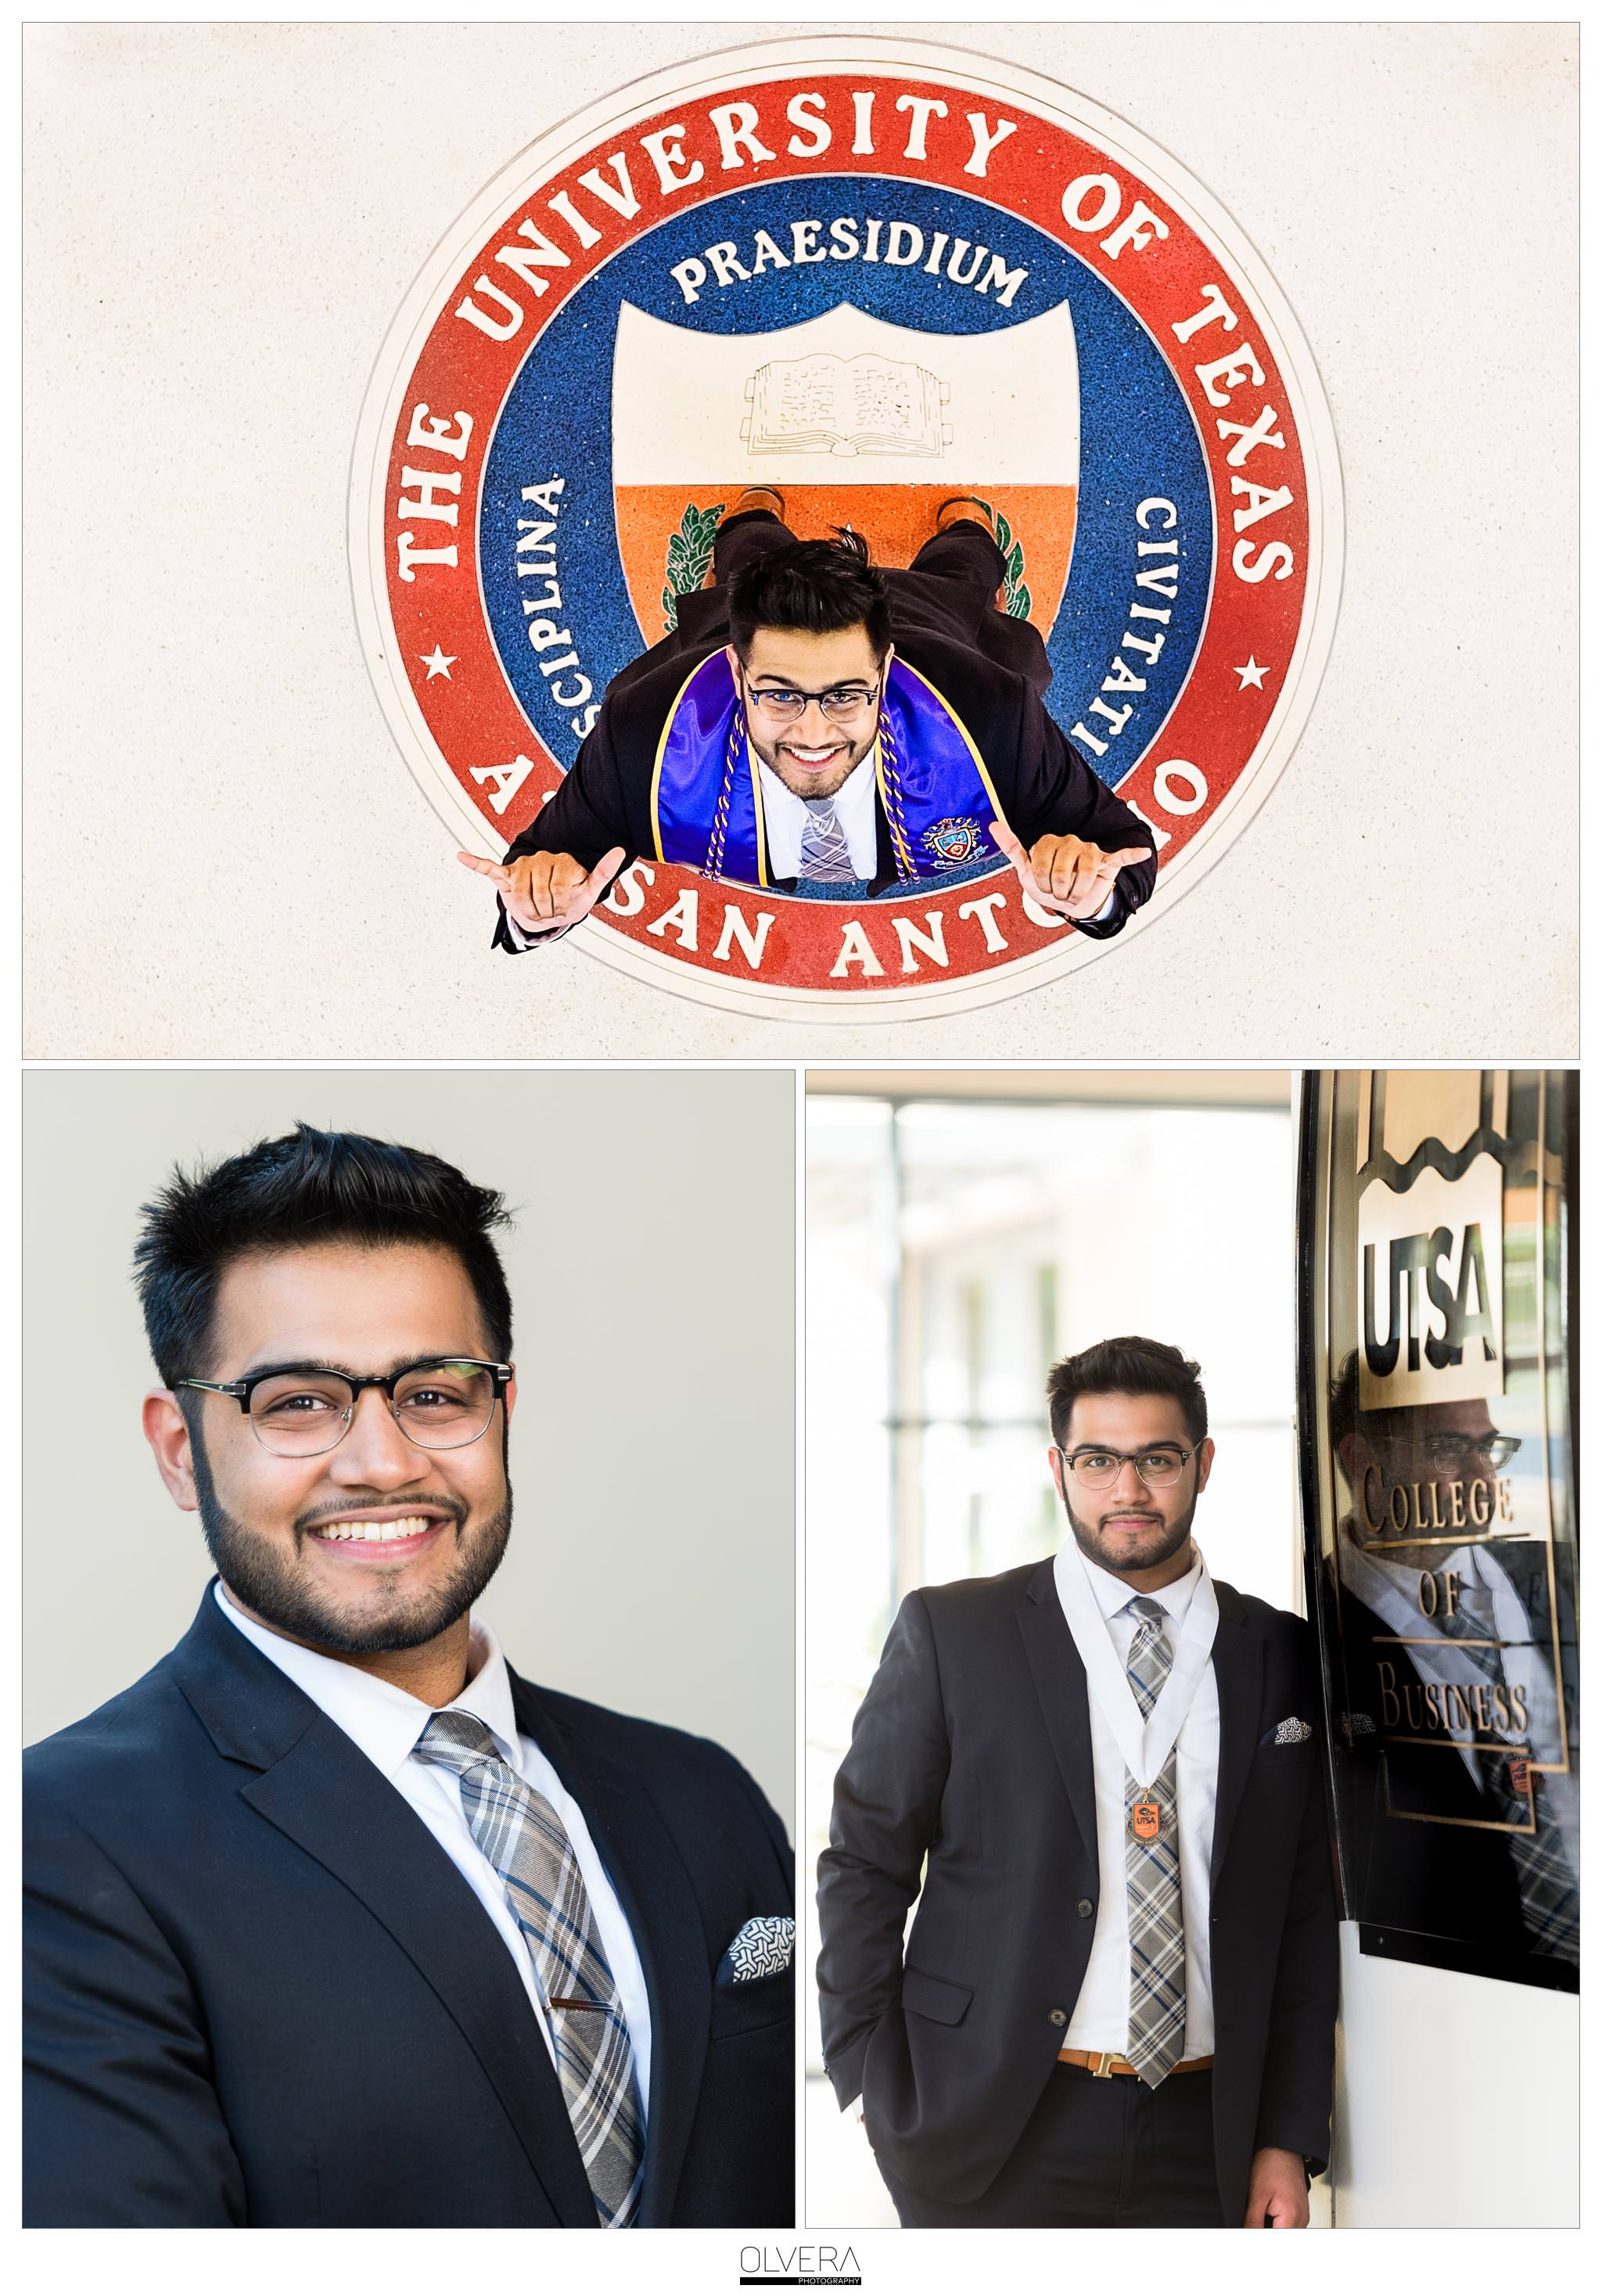 UTSA-Senior-Graduation- Portraits_San Antonio-TX 7